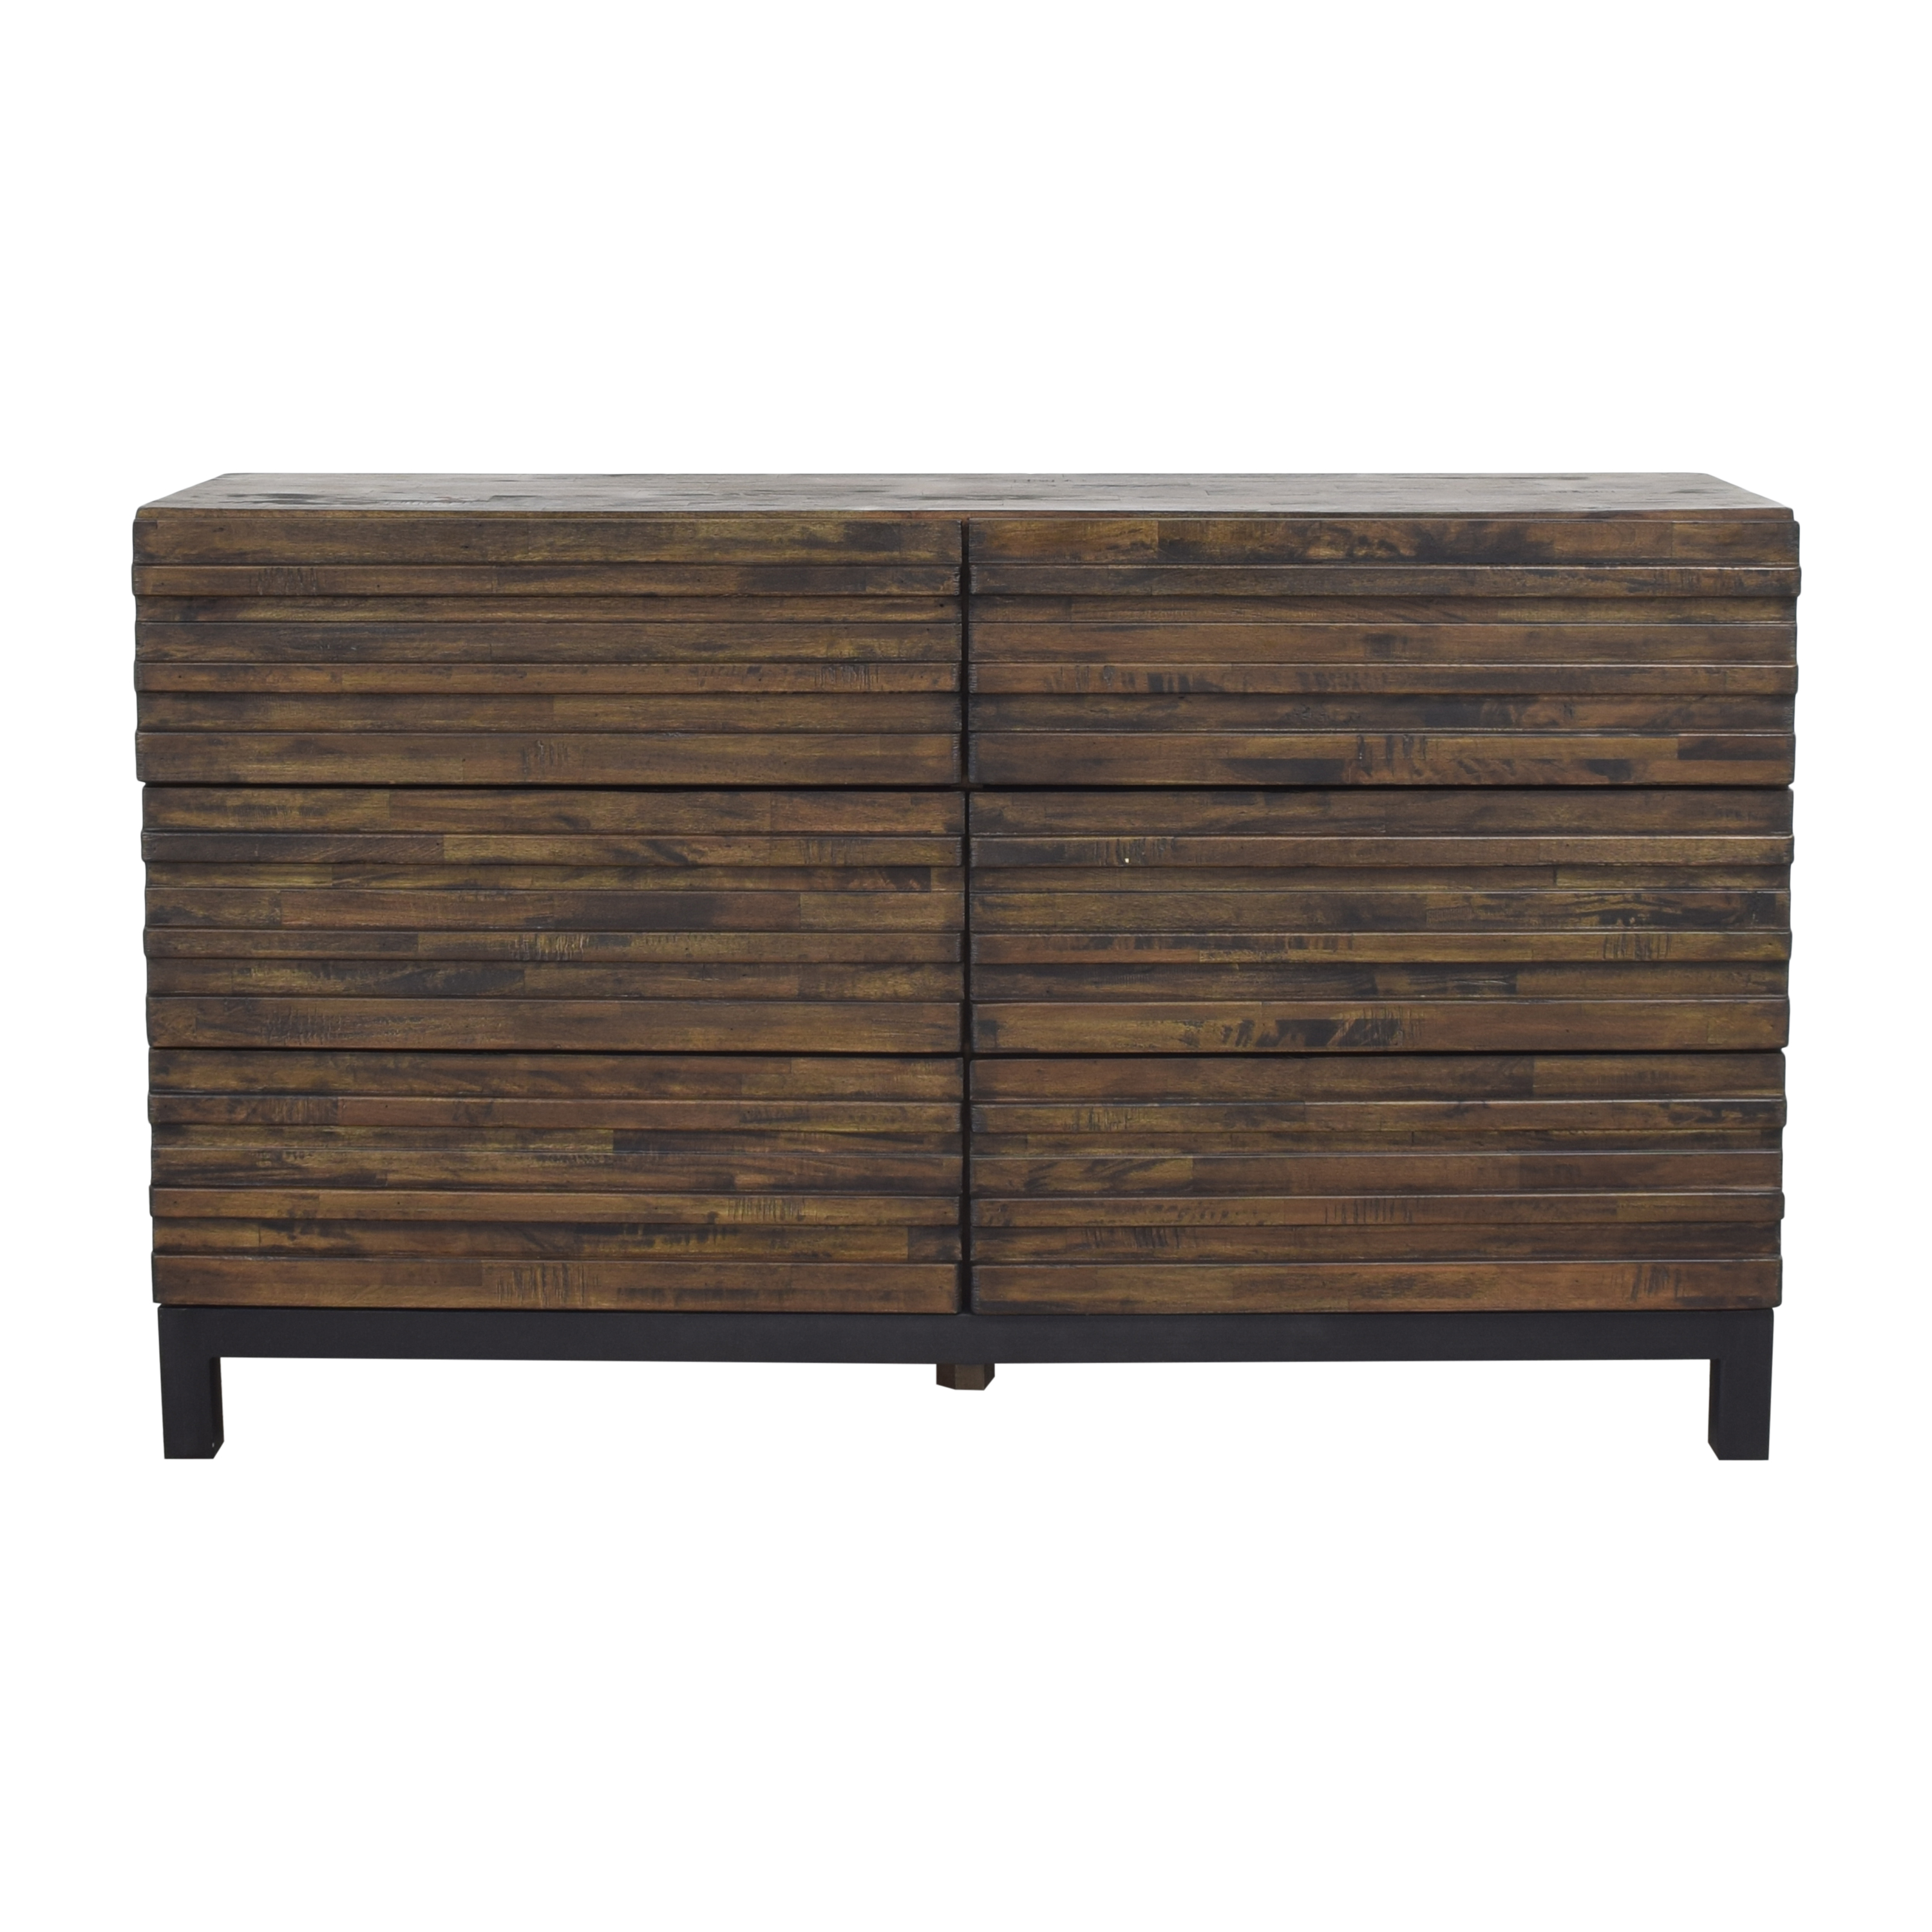 Raymour & Flanigan Nara Six Drawer Double Dresser sale